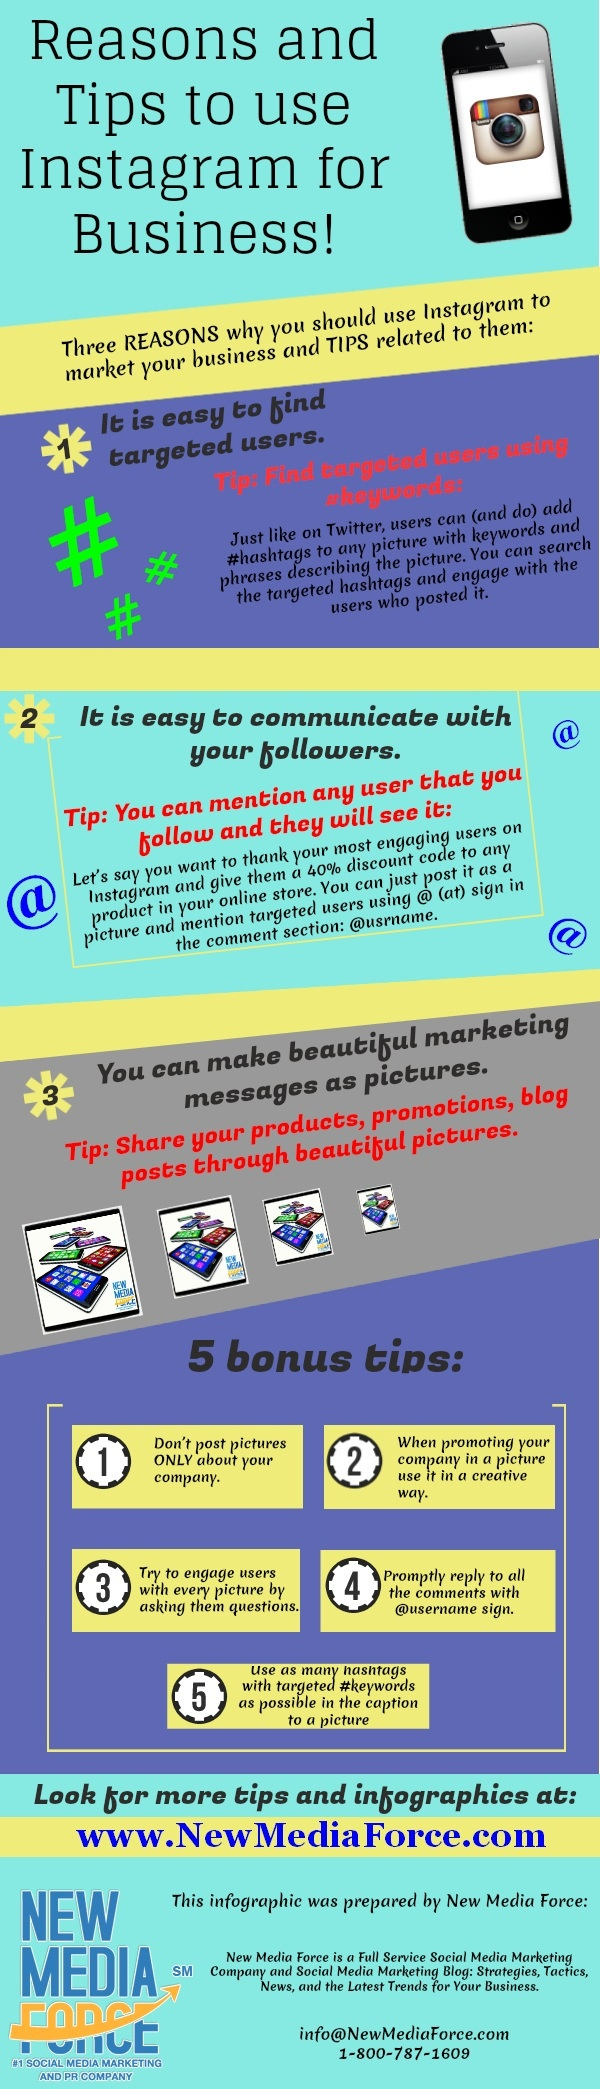 Reasons and Tips to use Instagram for Business!